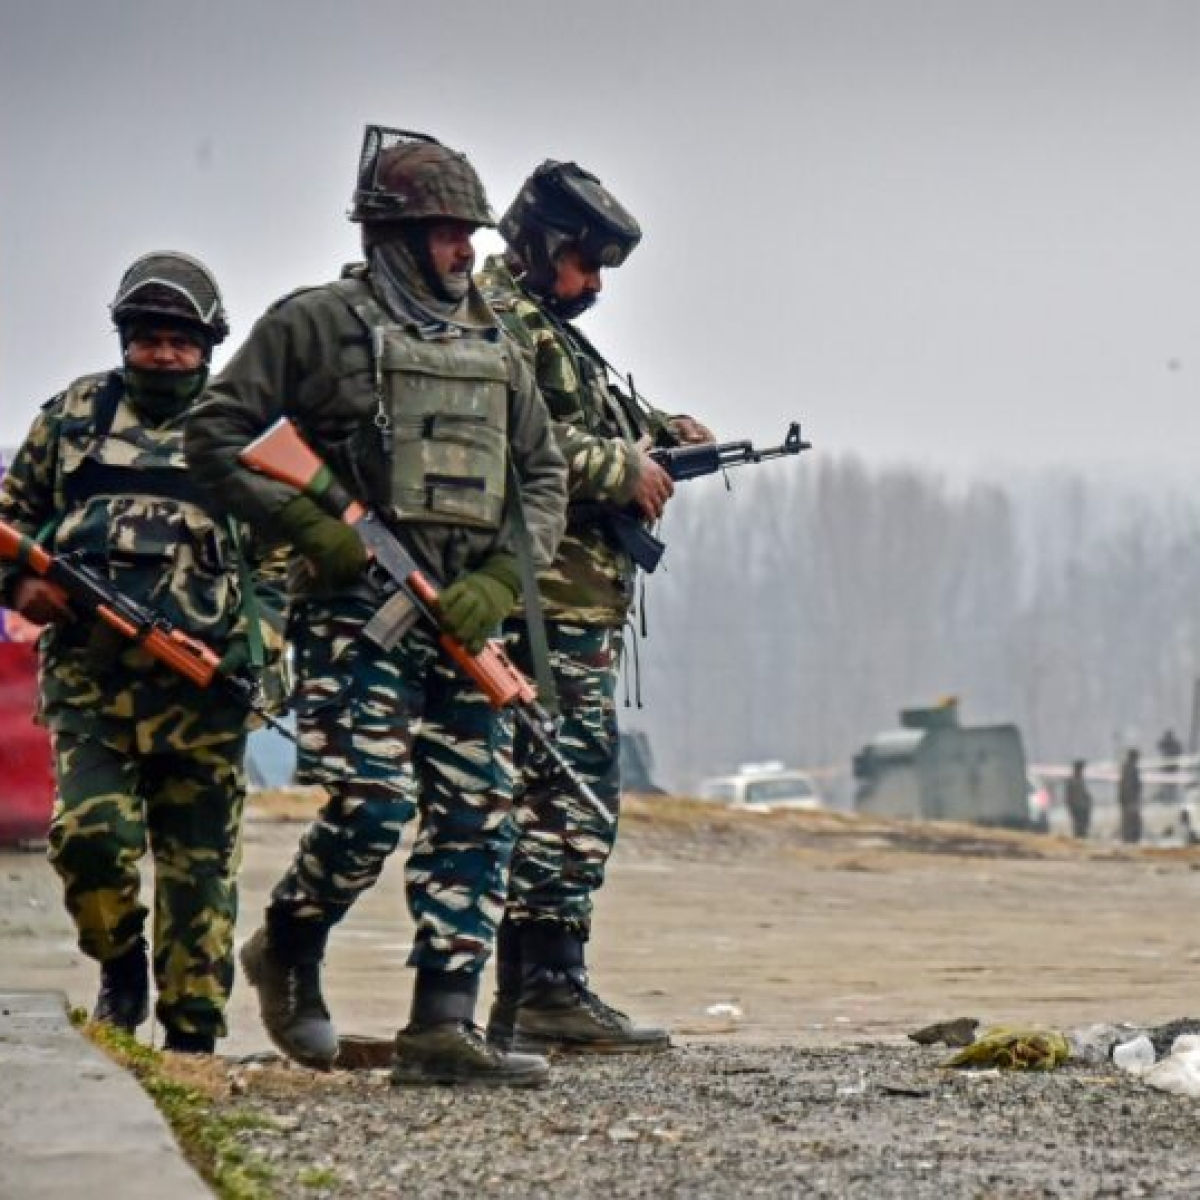 Two terrorists killed in an encounter with security forces in Jammu and Kashmir's Kulgam